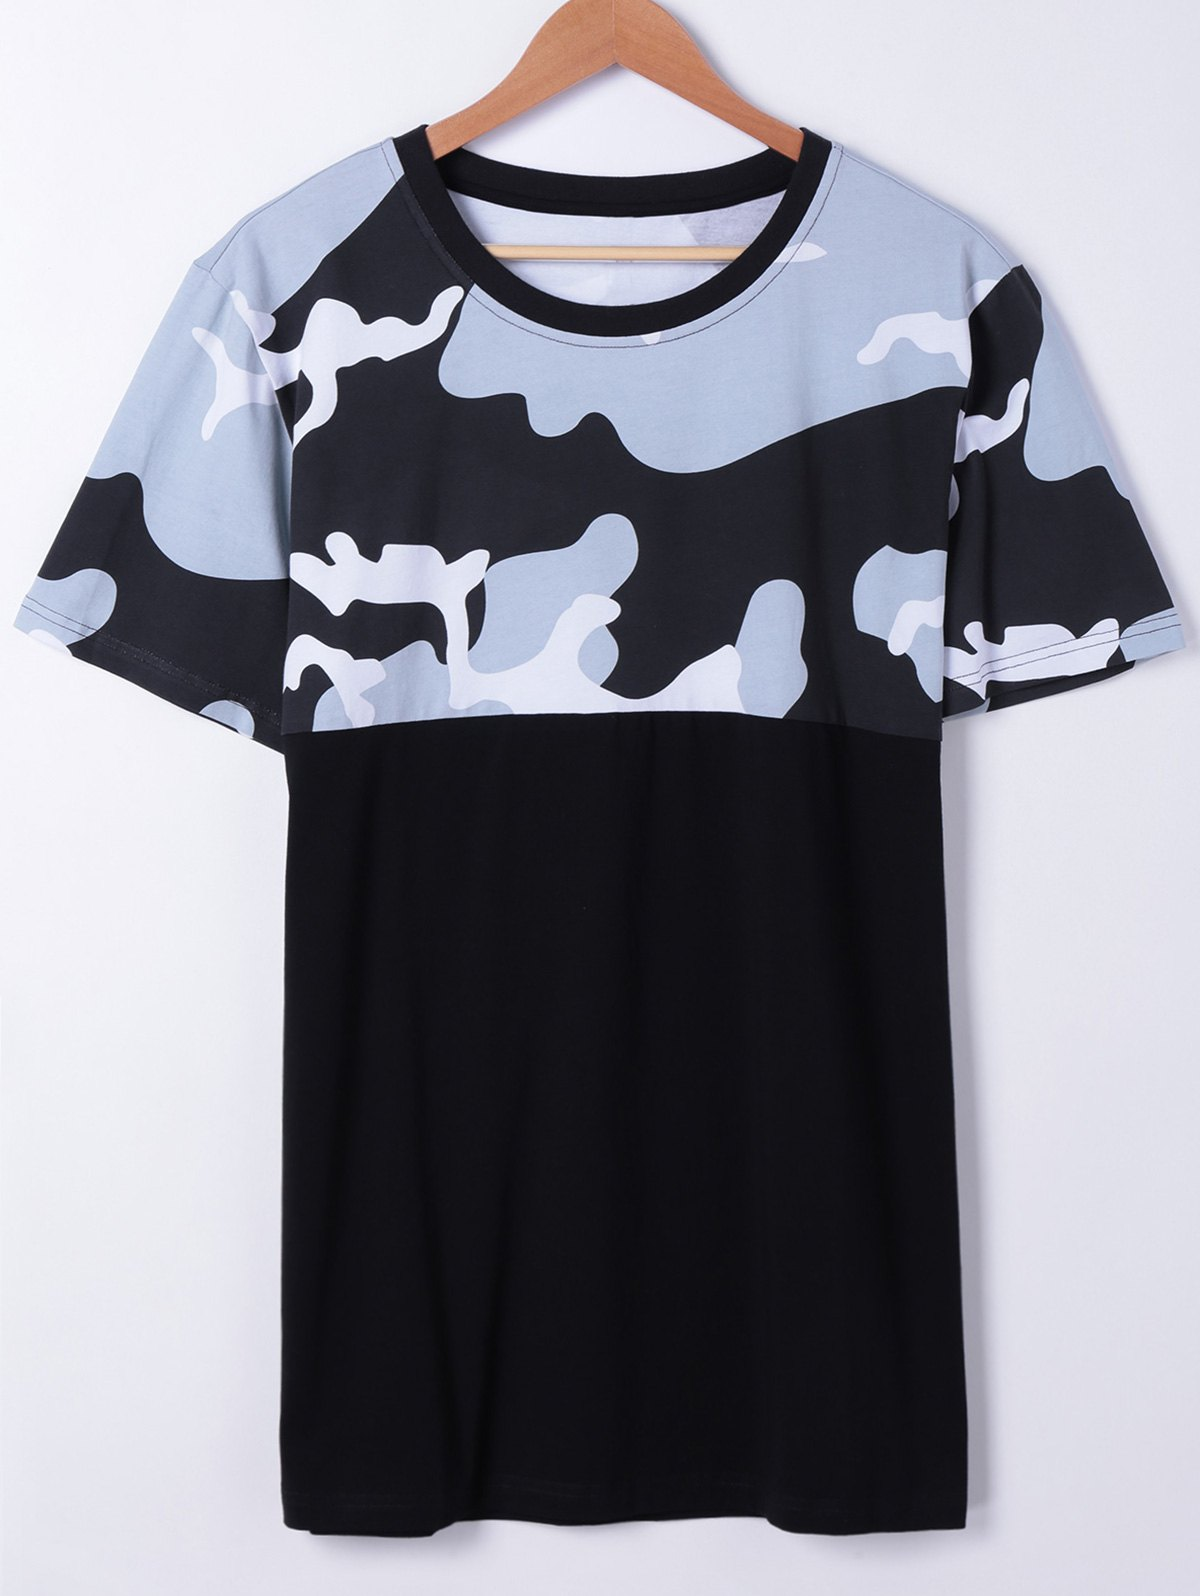 Fashionable Short Sleeves Round Neck Splice Camo Printing T-Shirt For MenMEN<br><br>Size: XL; Color: BLACK; Style: Fashion; Material: Cotton,Rayon; Sleeve Length: Short; Collar: Round Neck; Pattern Type: Print; Weight: 0.250kg; Package Contents: 1 x T-Shirt;